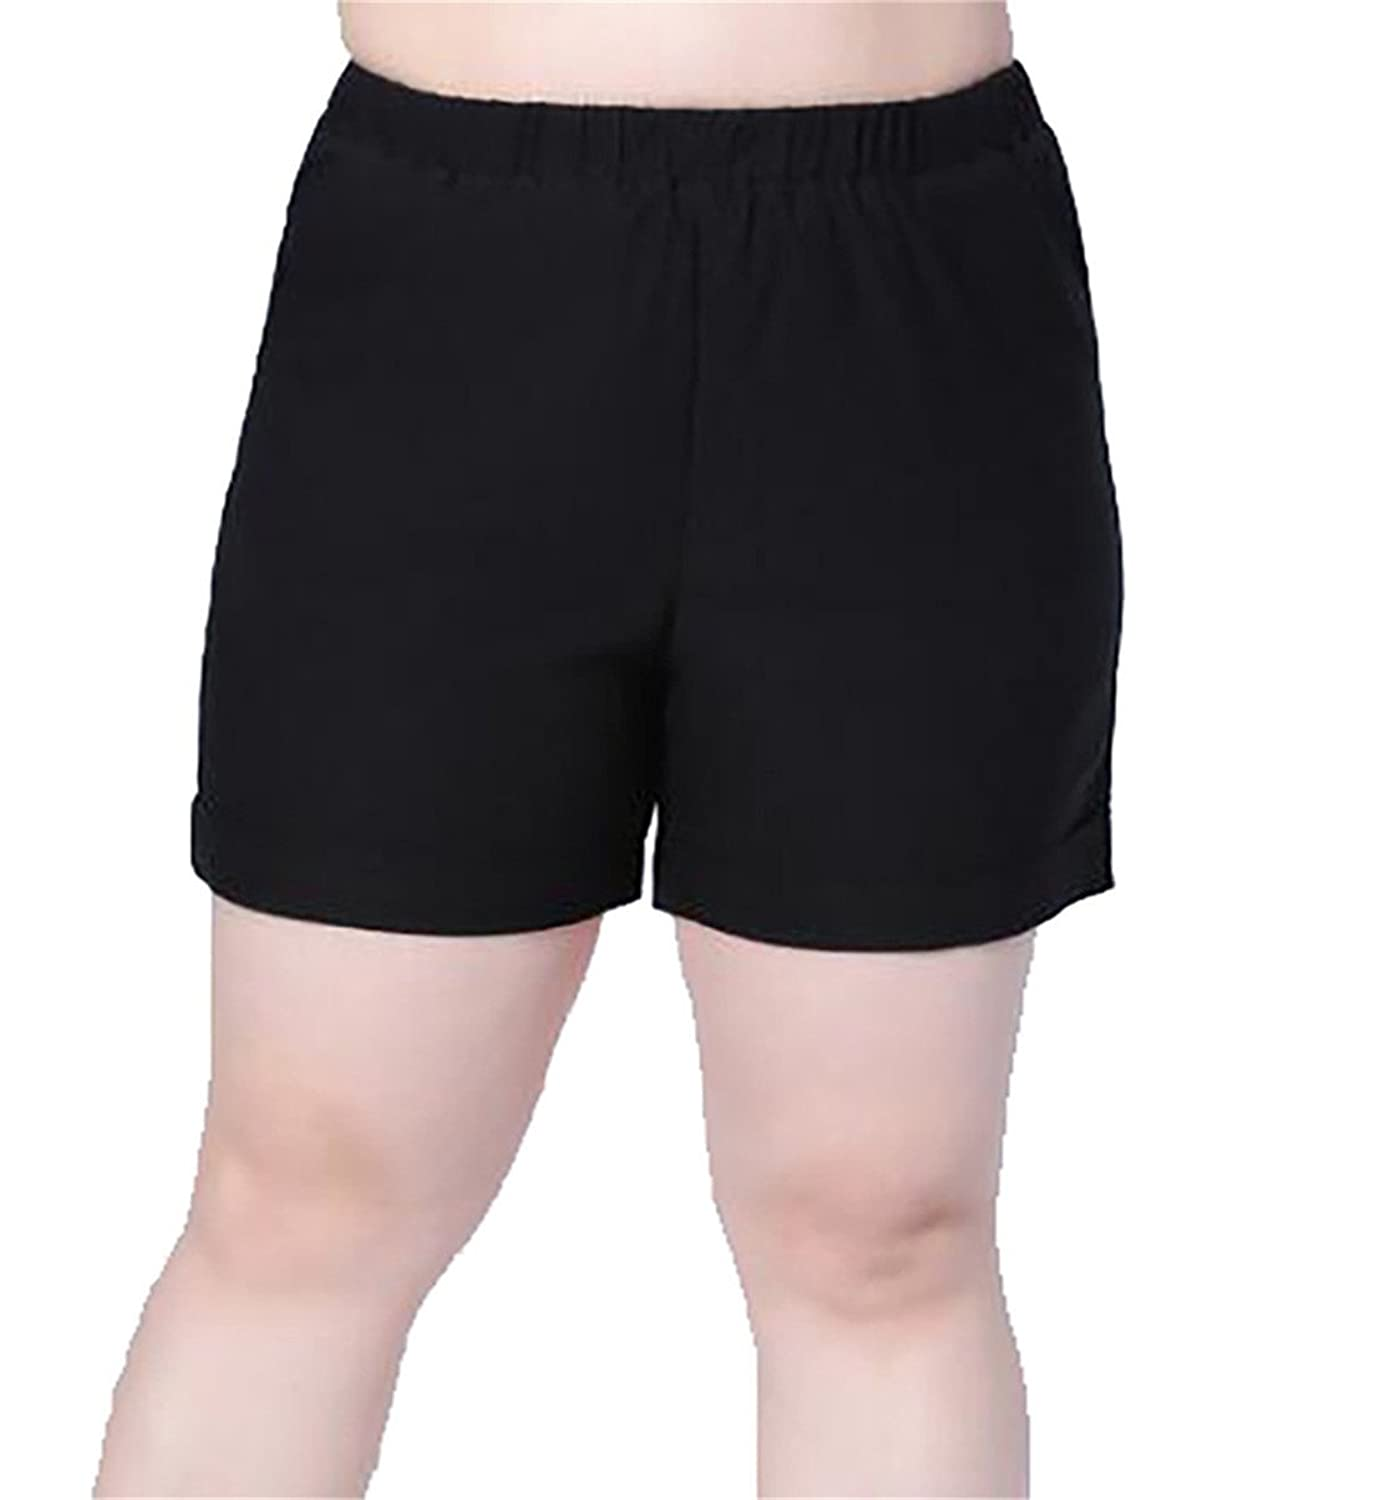 f3f68c21ed durable modeling YUELANDE-Women Plus Size Solid Boardshort Swim Shorts  Bottom